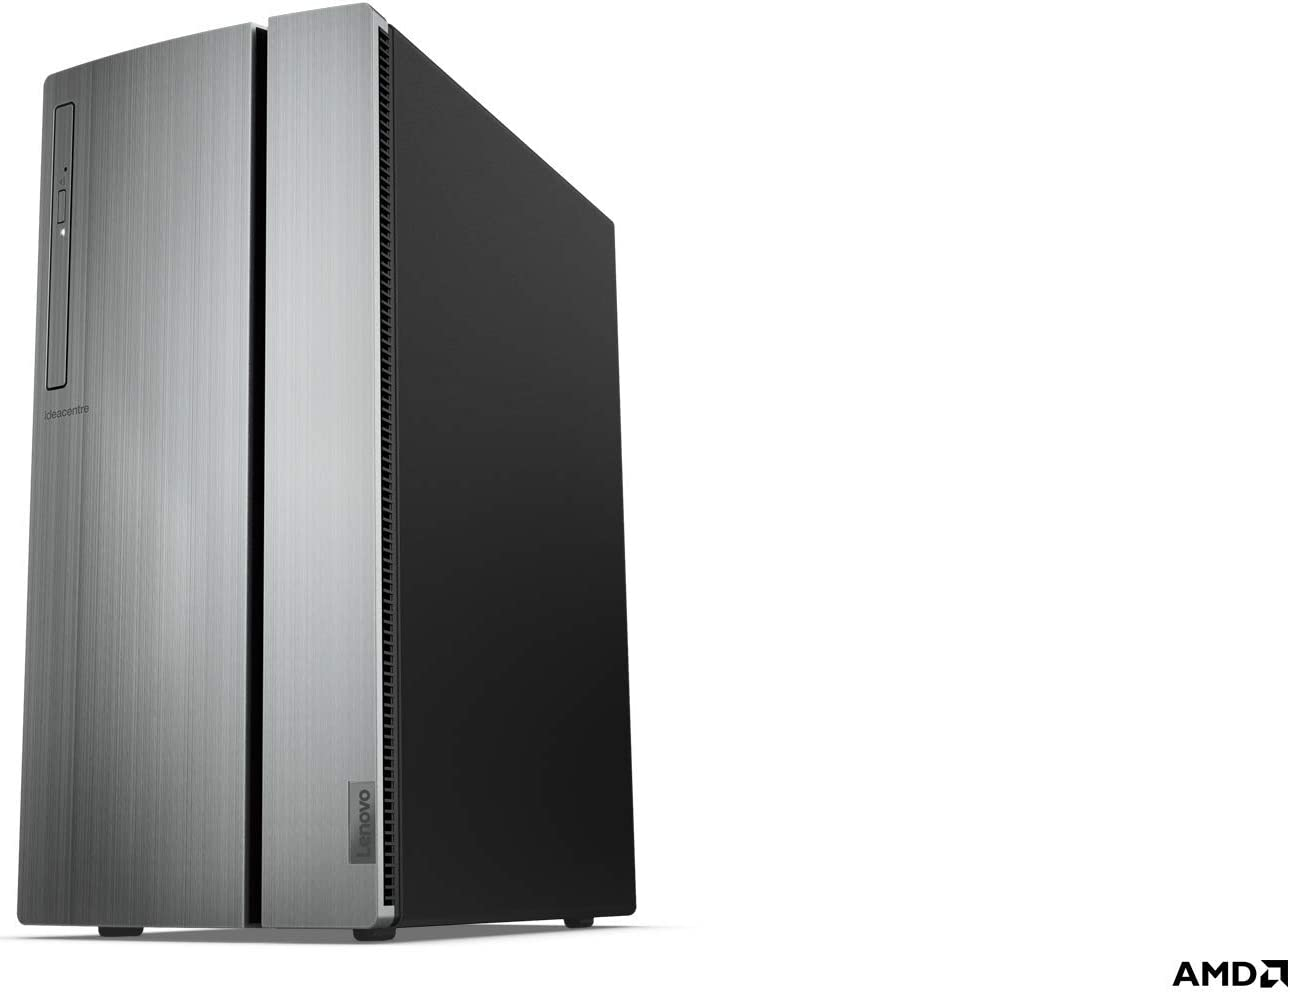 Lenovo IdeaCentre 720 Tower, 18L Desktop Computer (Ryzen 7 2700 Processor, 16 Dual Channel DDR4, 128GB PCIe, 2TB SATA HDD, AMD Radeon RX 560 Graphics, Windows 10 Home), 90HY0006US, Warm Silver